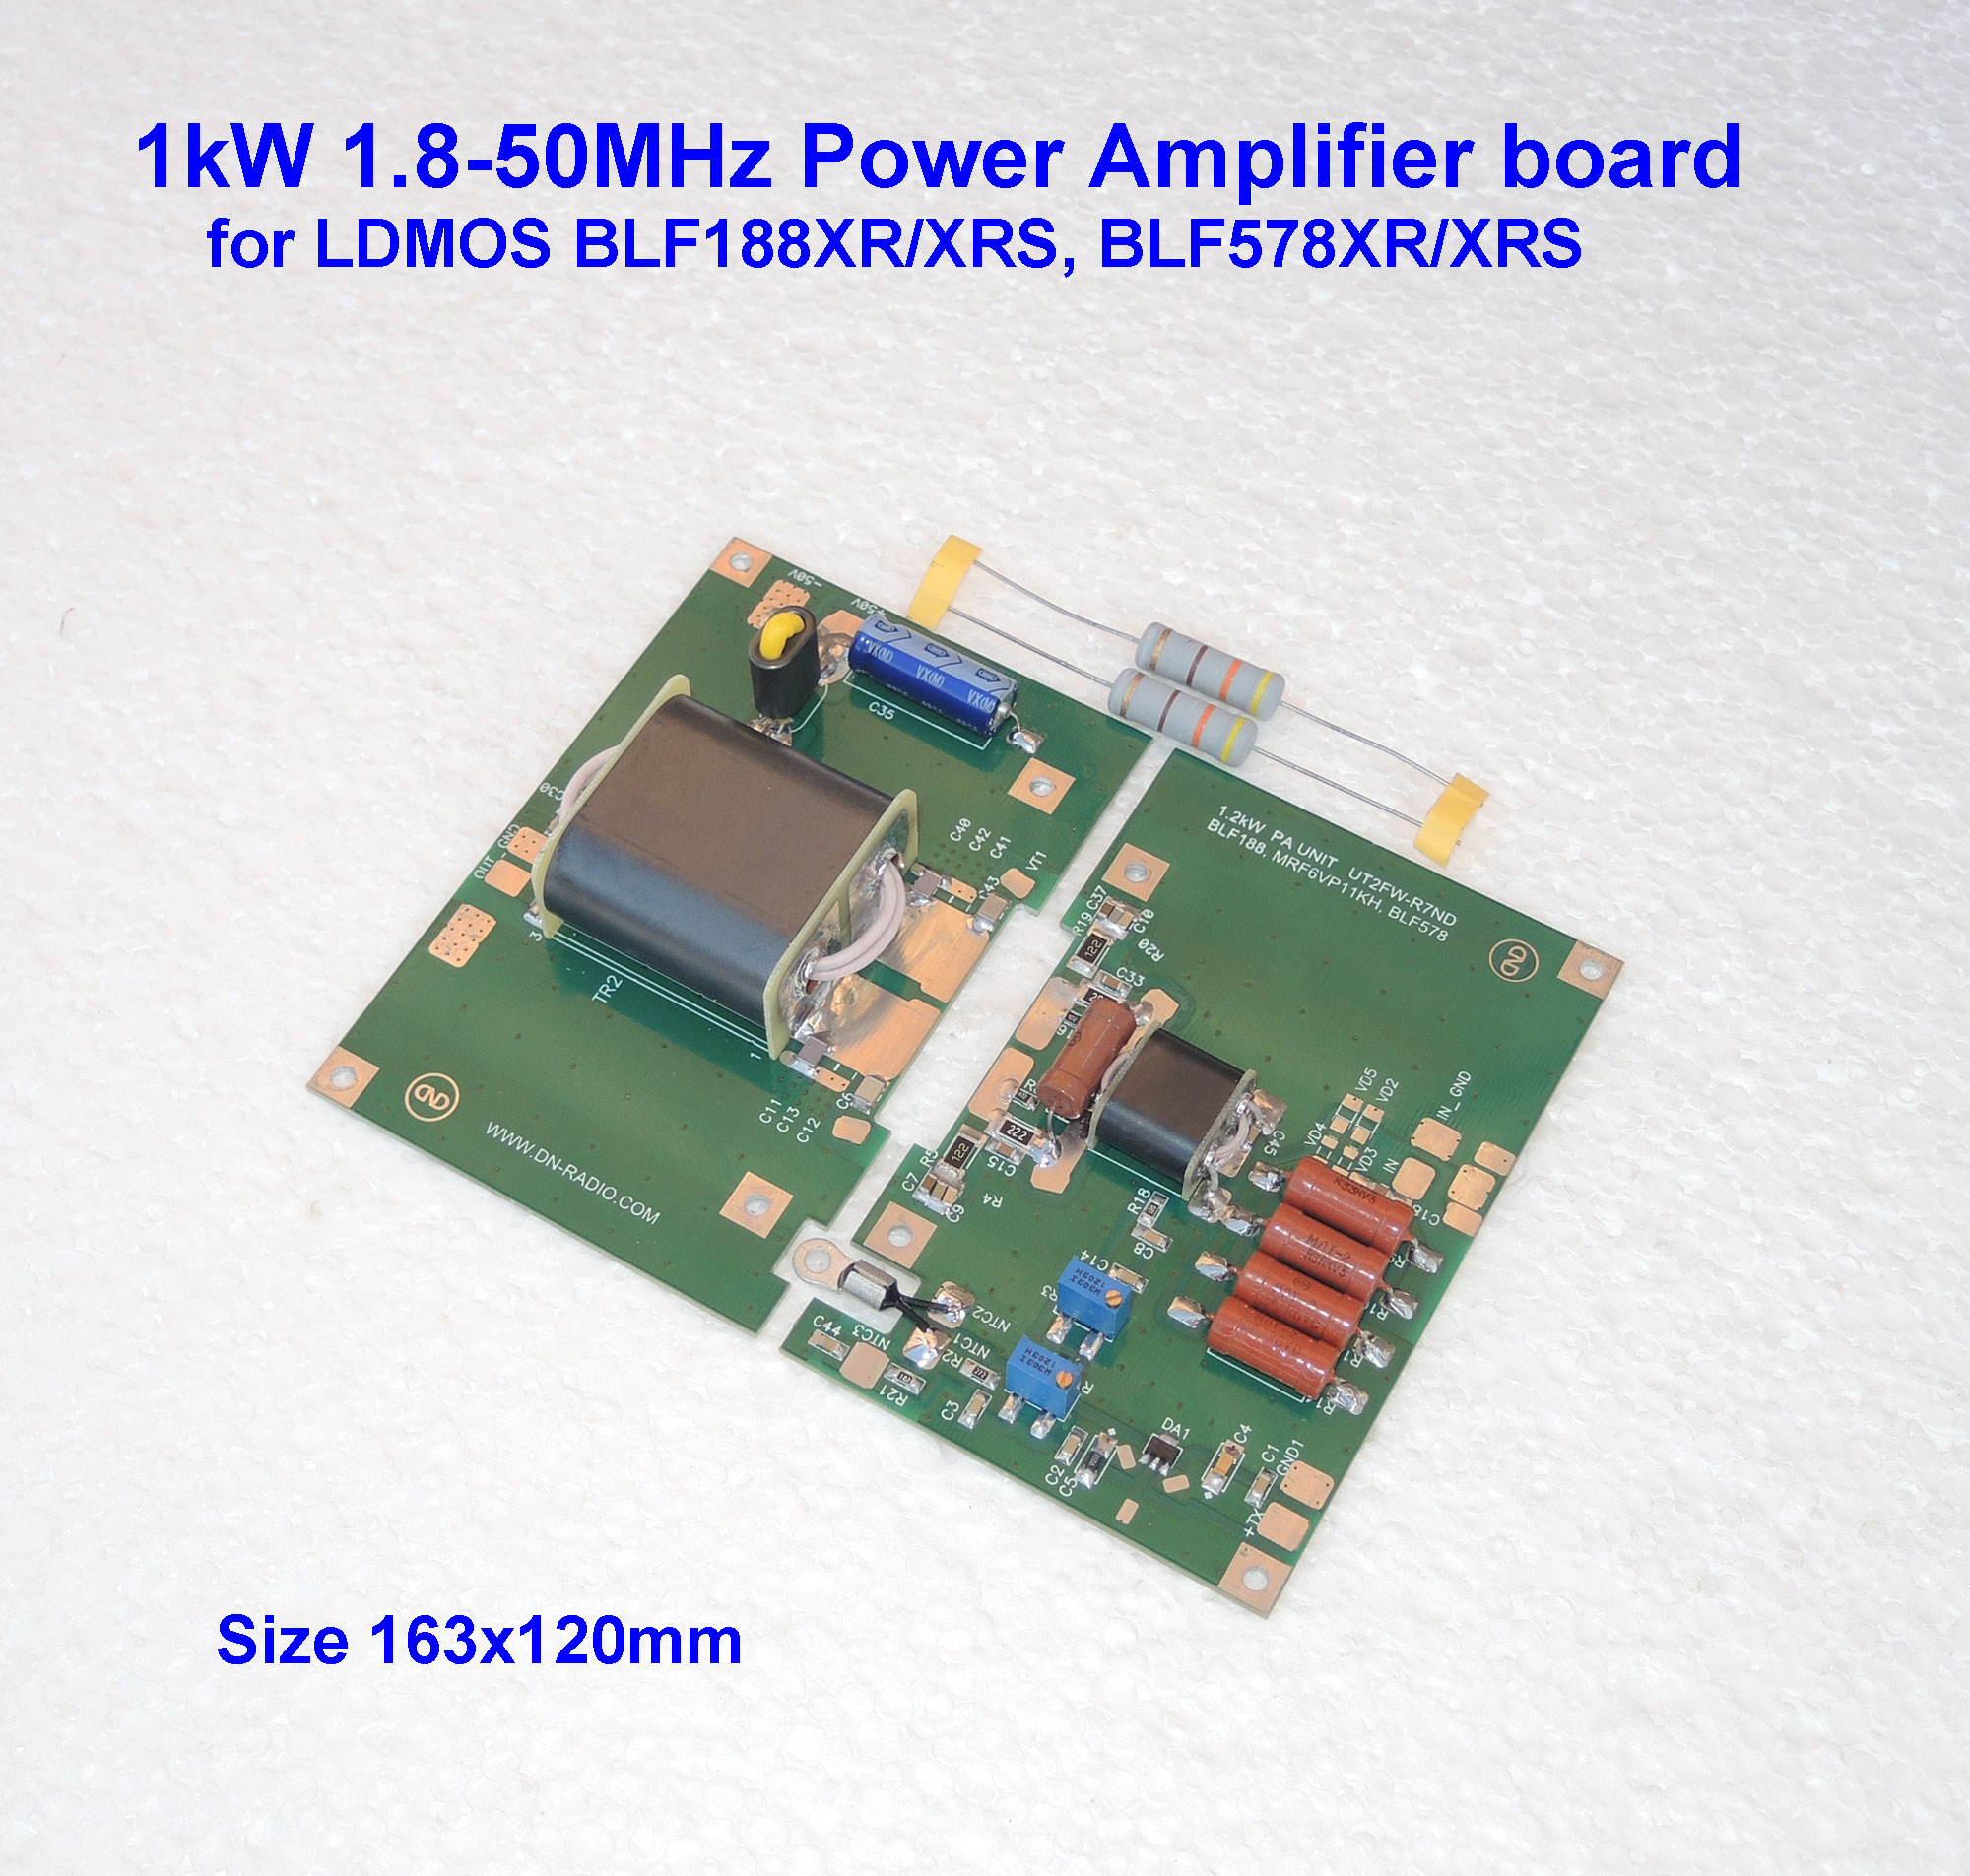 1kW 1 8-30MHz, 700W 50MHz HF POWER AMPLIFIER BOARD for LDMOS